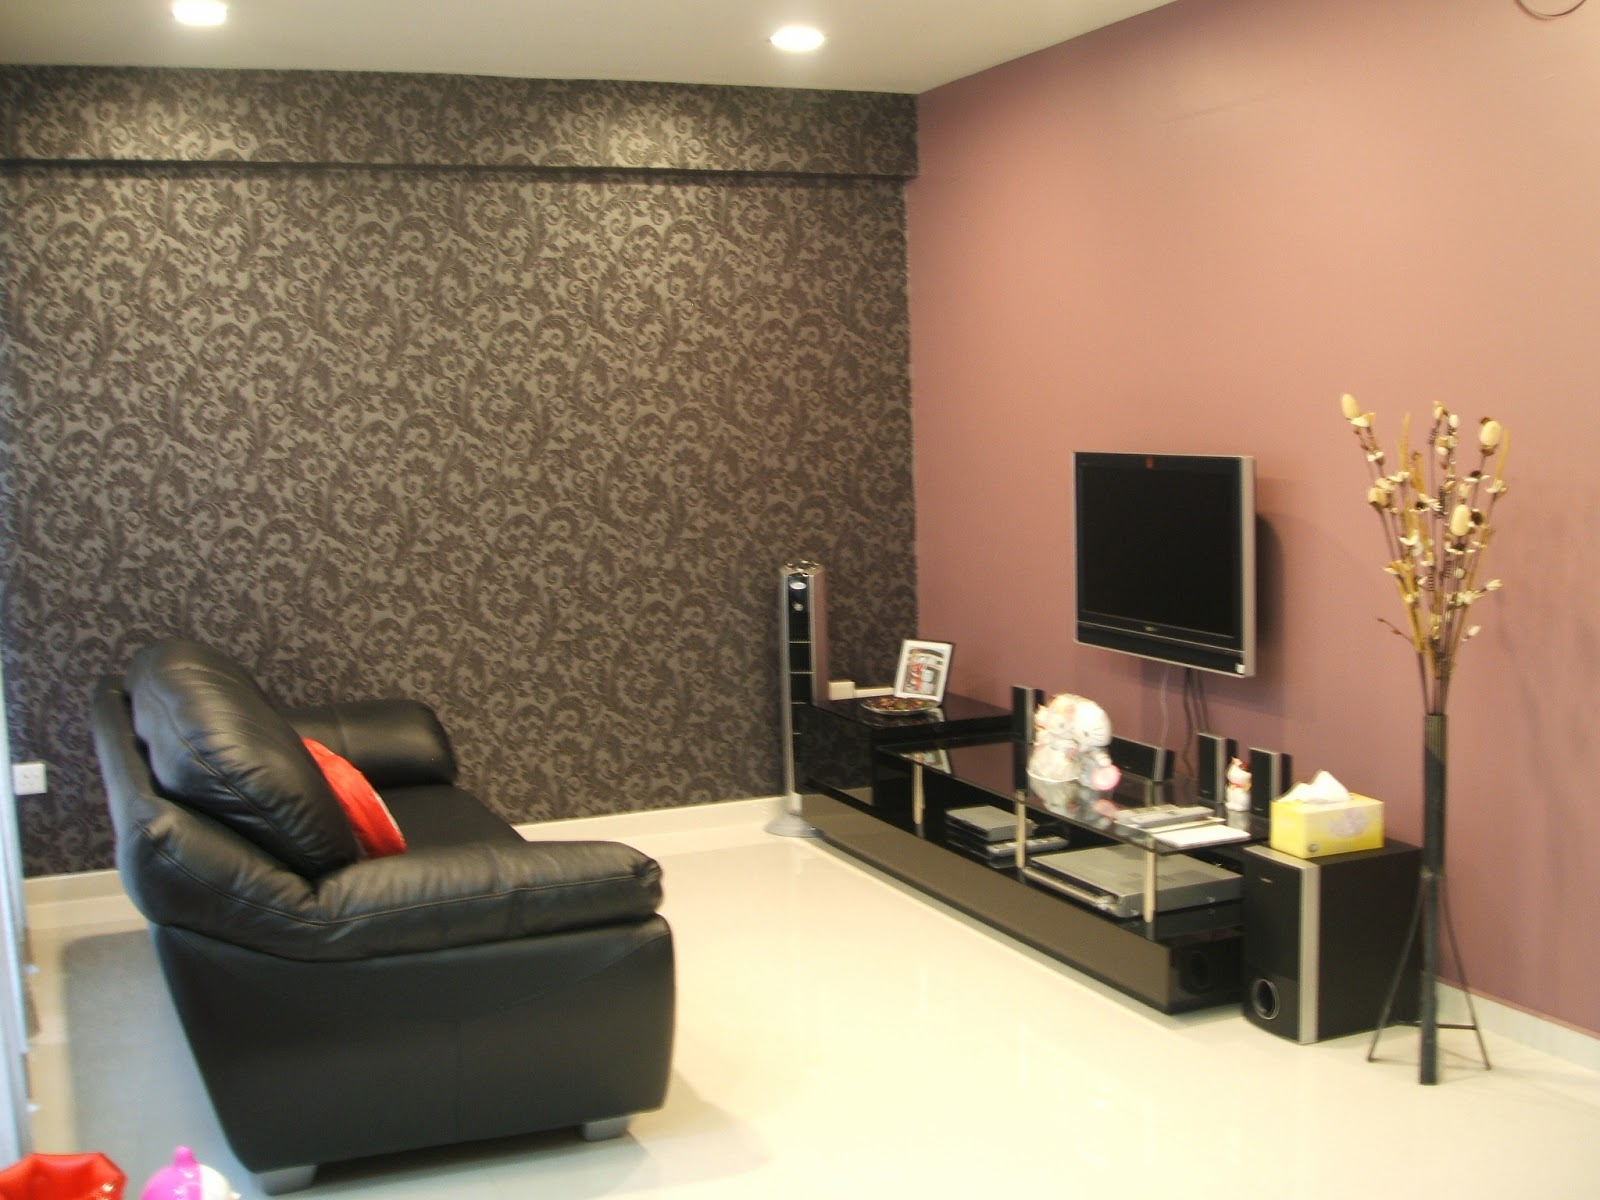 Cool Light Red Mixed Brown Patterned Wall Paint Small Living Room Colors With Cozy Leather Black Sectional Sofa And Nice Tv Unit Complete